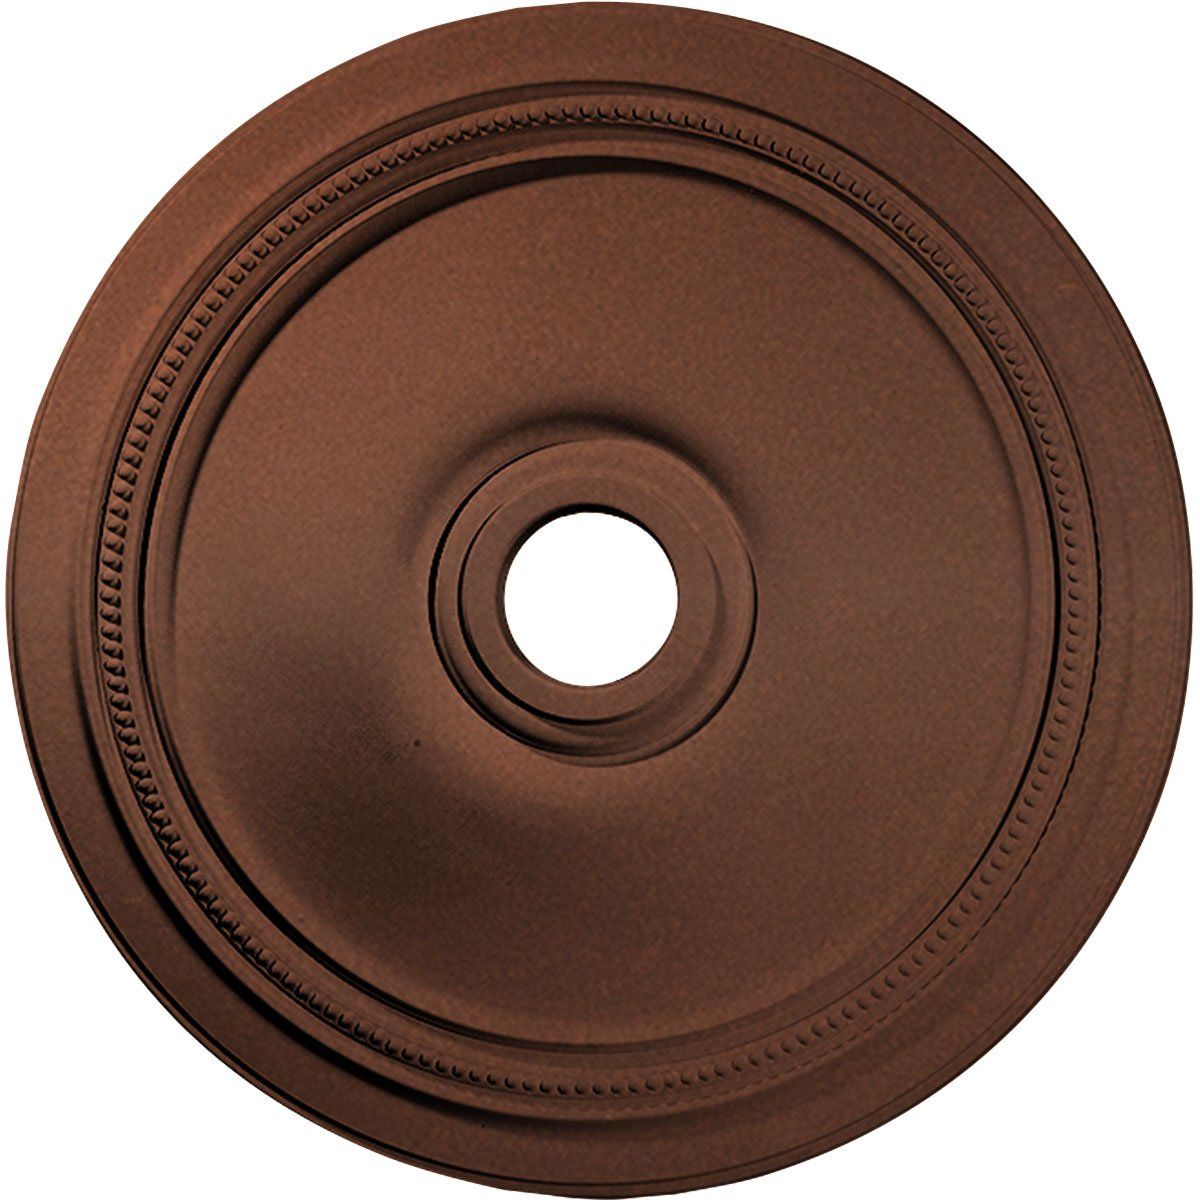 Ekena Millwork CM24DICPS 24'' OD x 3 5/8'' ID x 1 P Diane Ceiling Medallion (fits Canopies up to 6 1/4''), Copper Penny